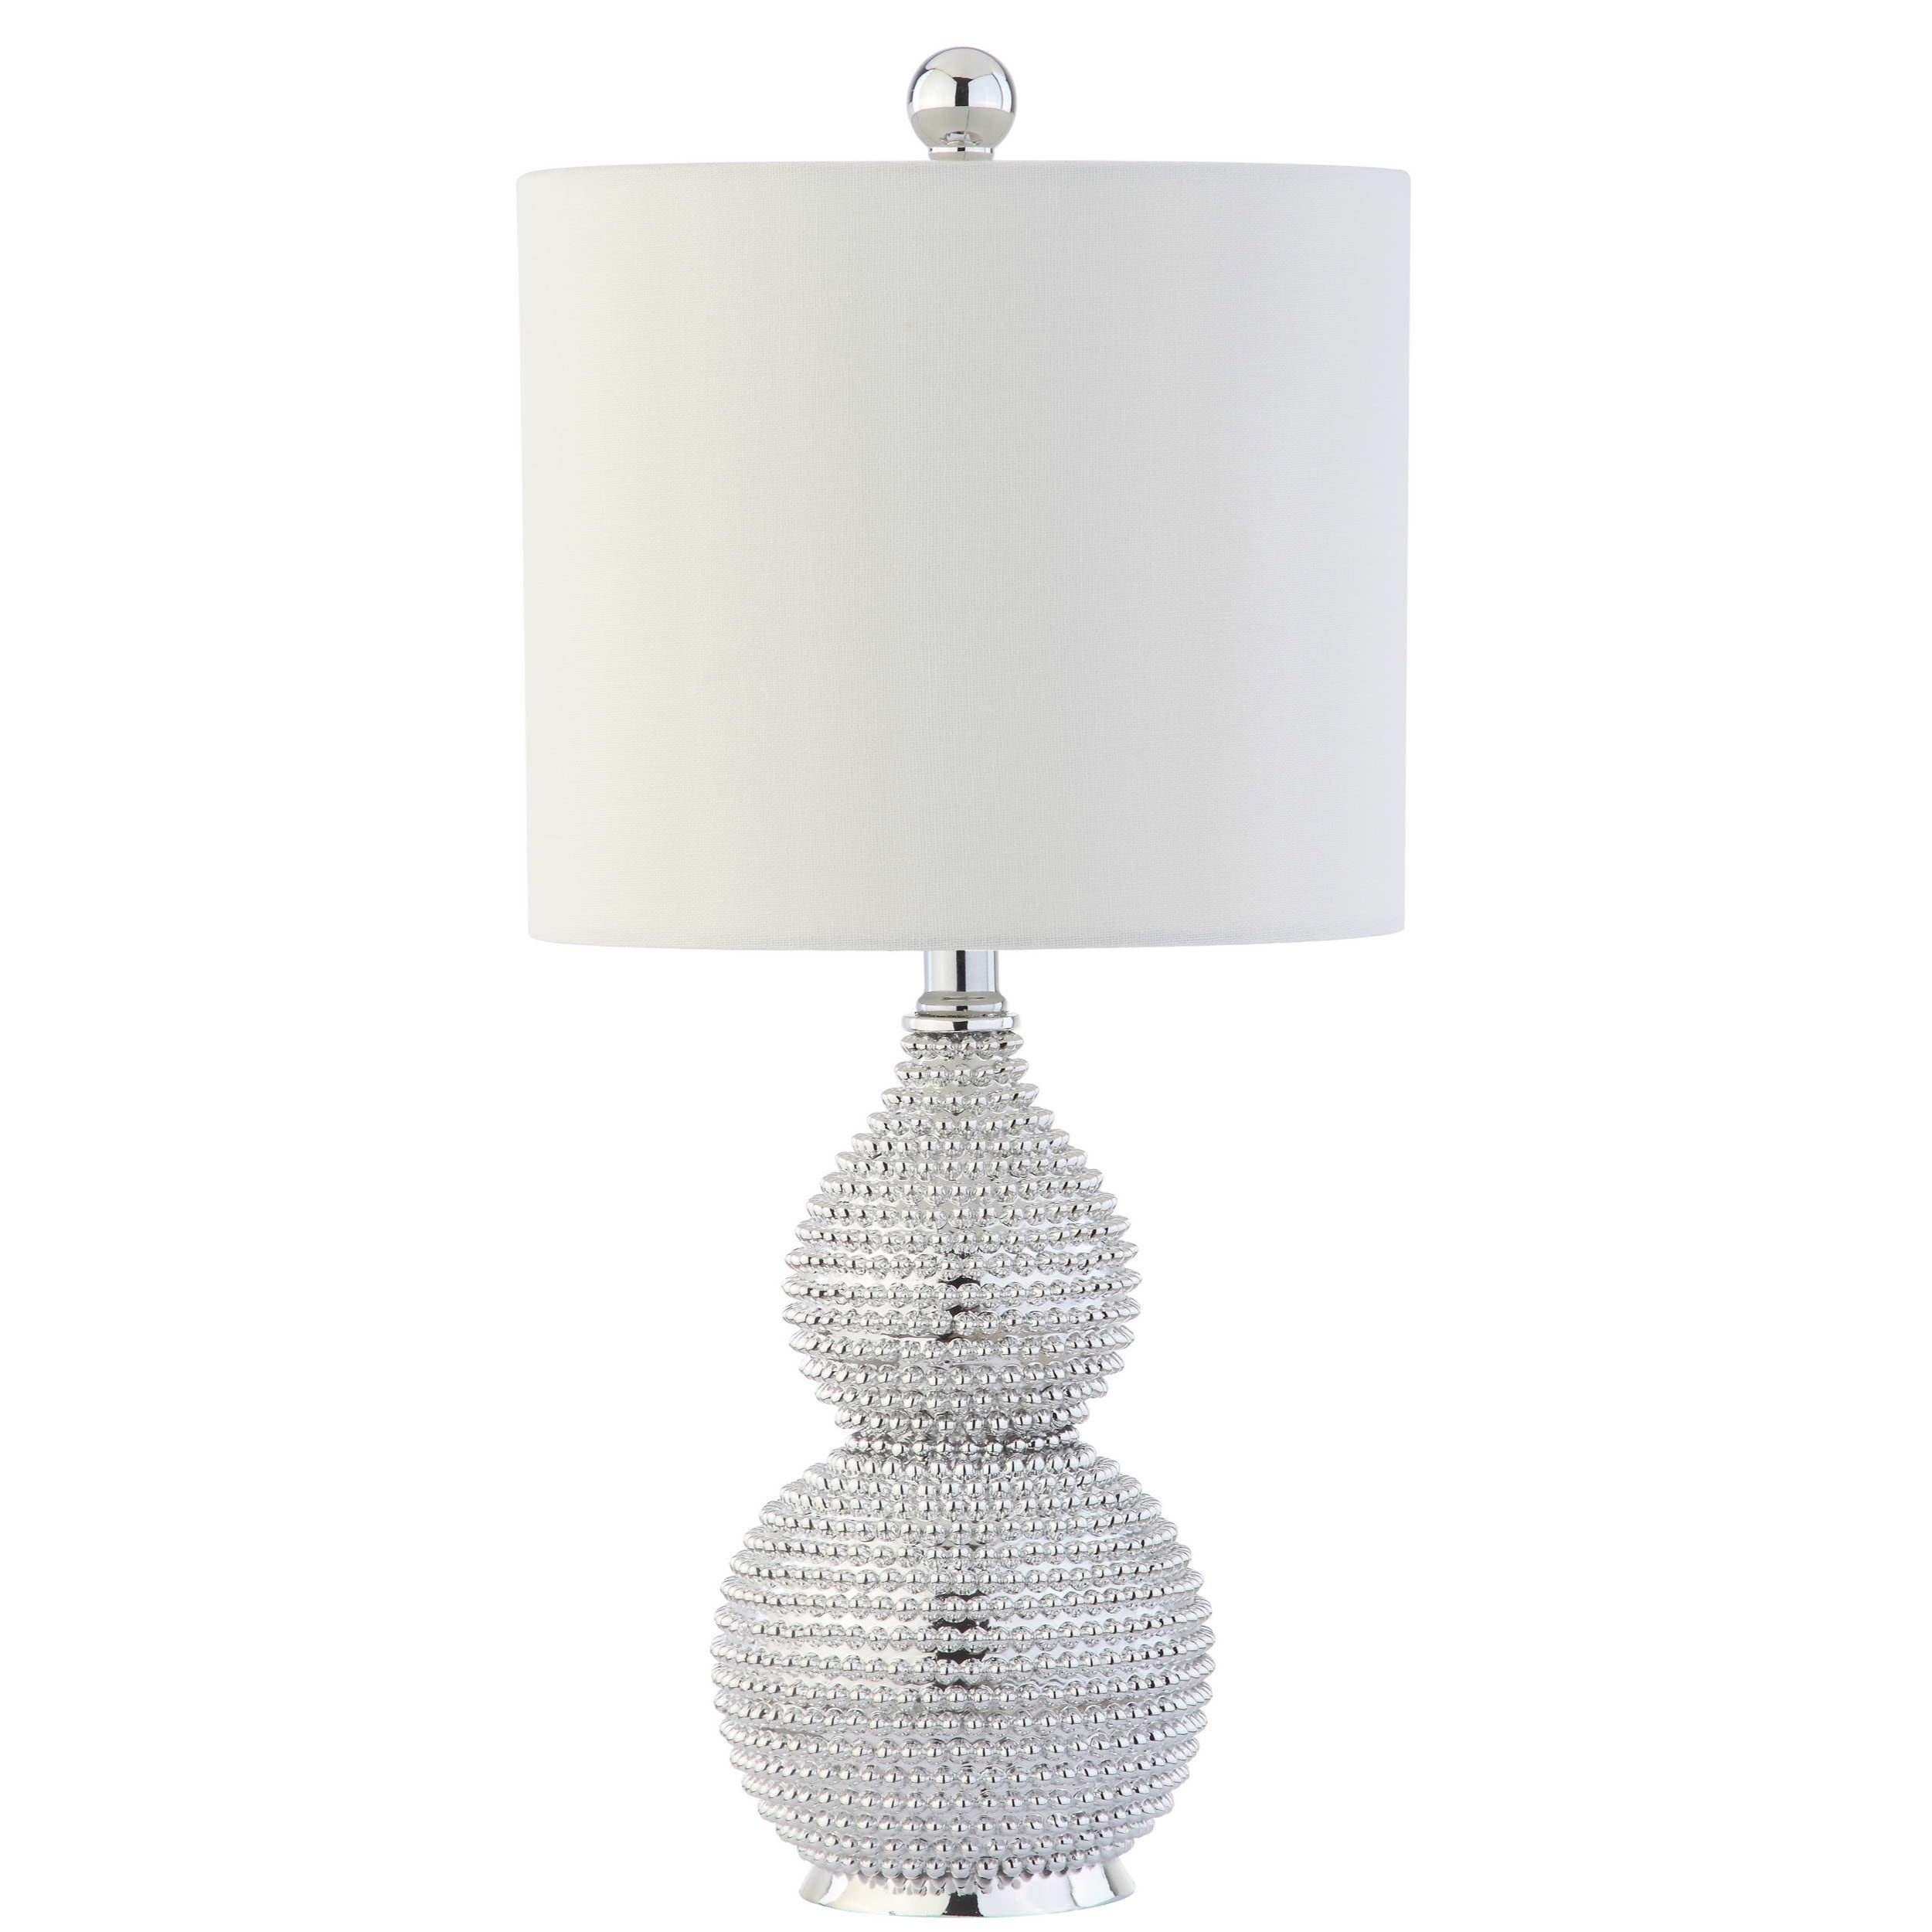 Safavieh Lighting 20-inch Clarabel Silver Chrome Table Lamp (As Is Item) (TBL4042A)